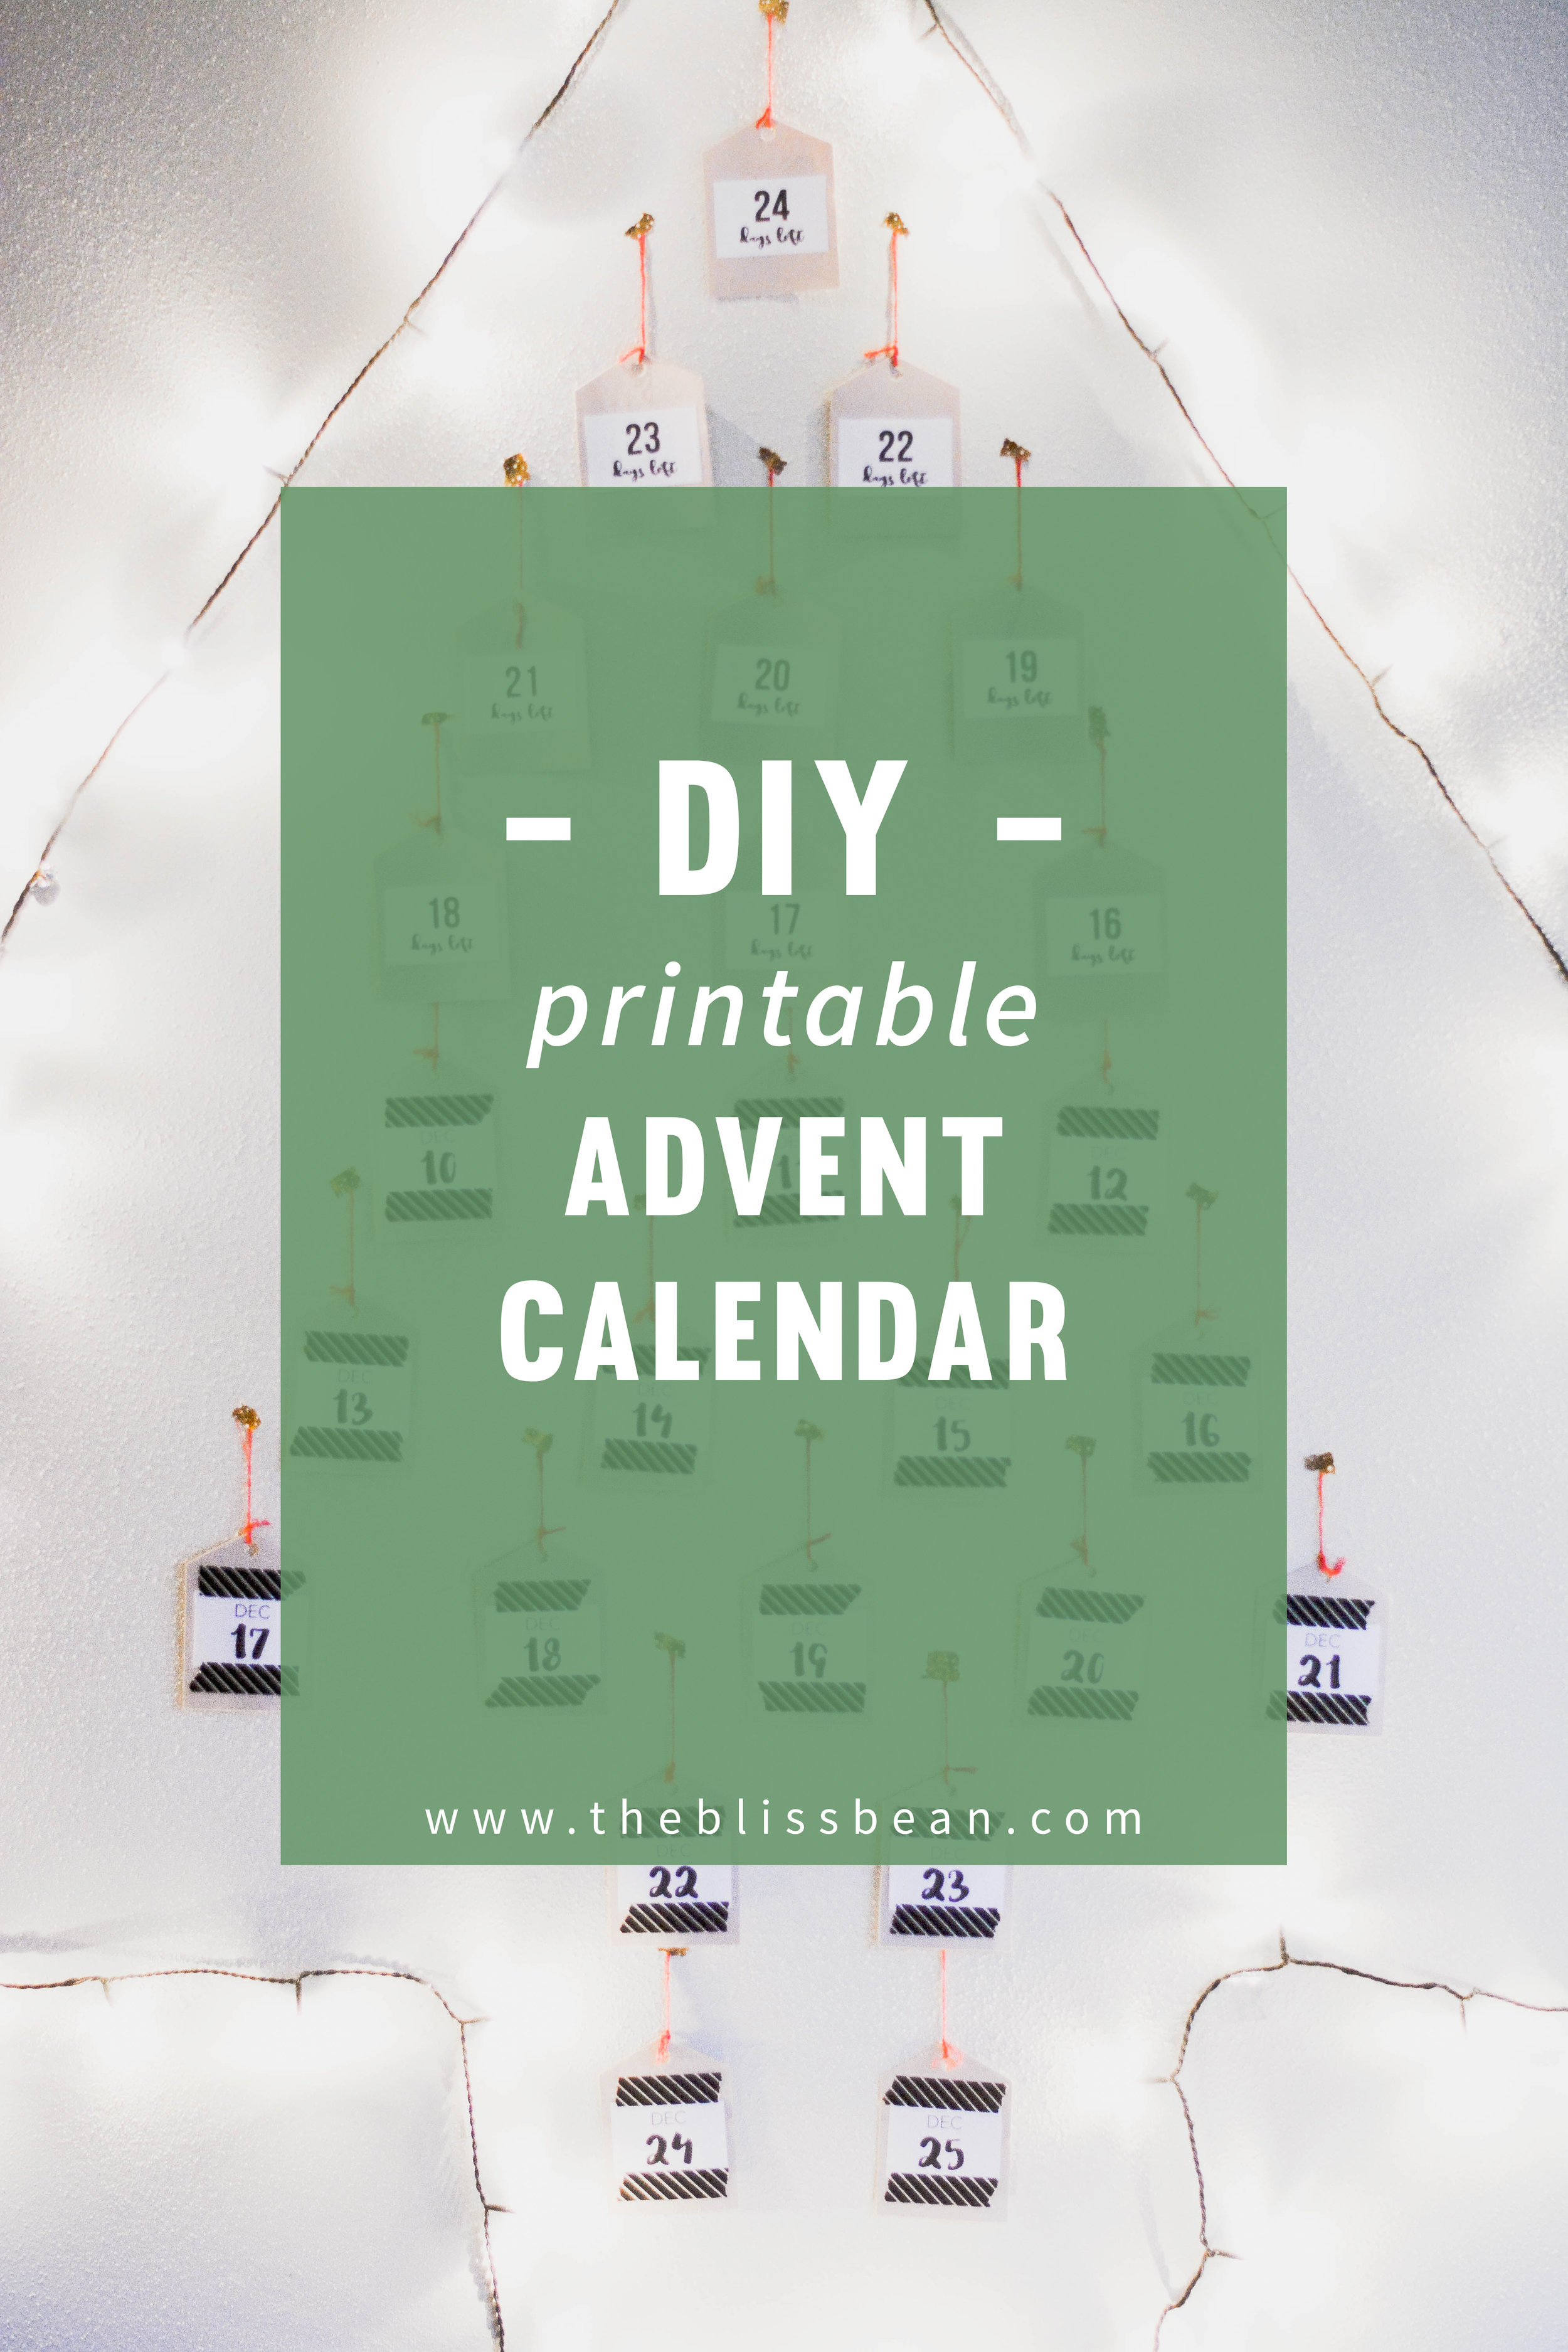 Printable Advent Calendar Cover Photo.jpg